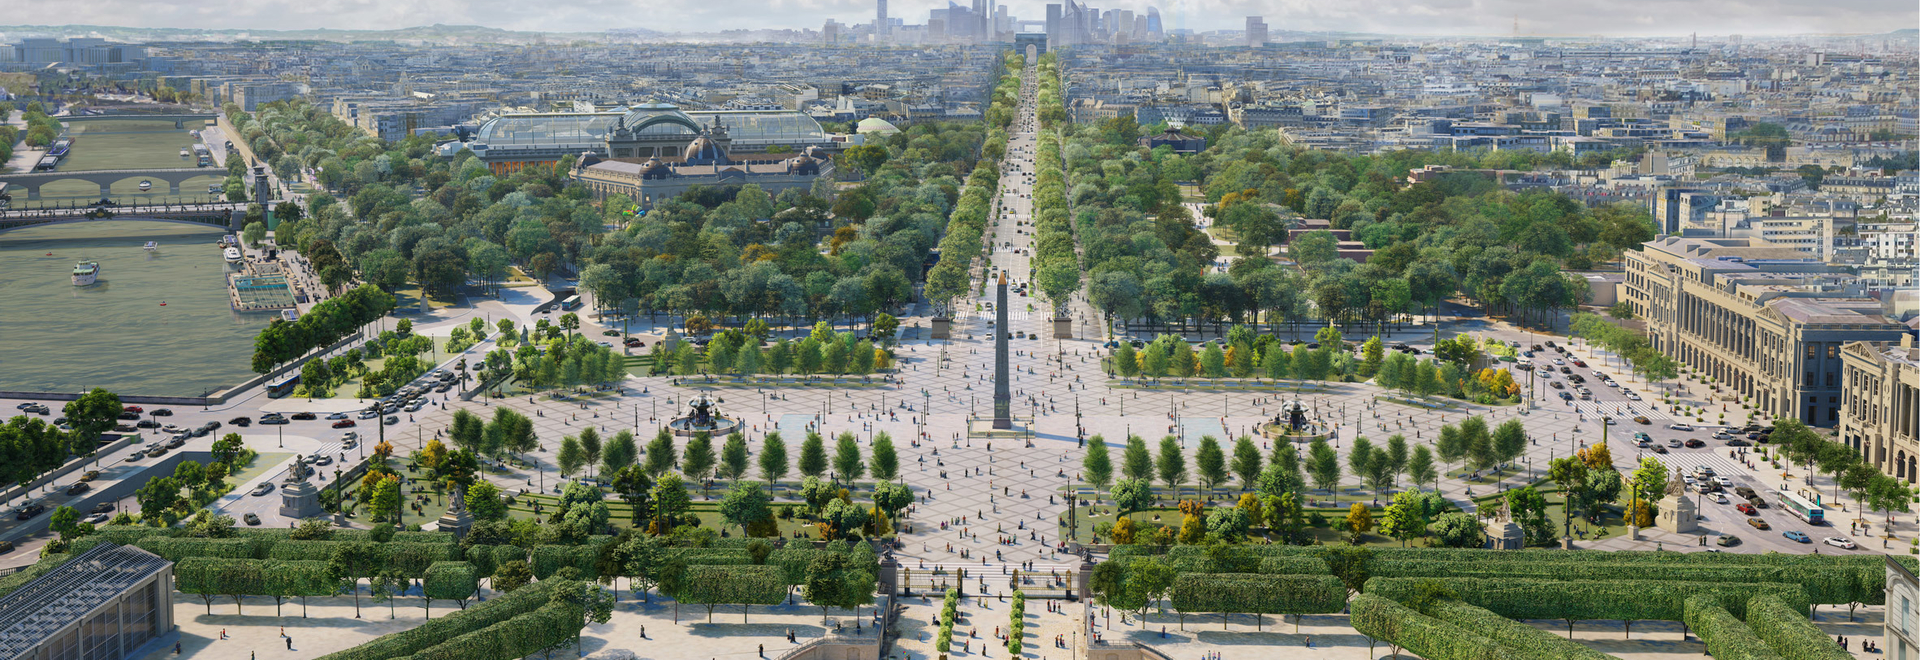 The redesign of Place de la Concorde will be completed in time for the 2024 Olympics